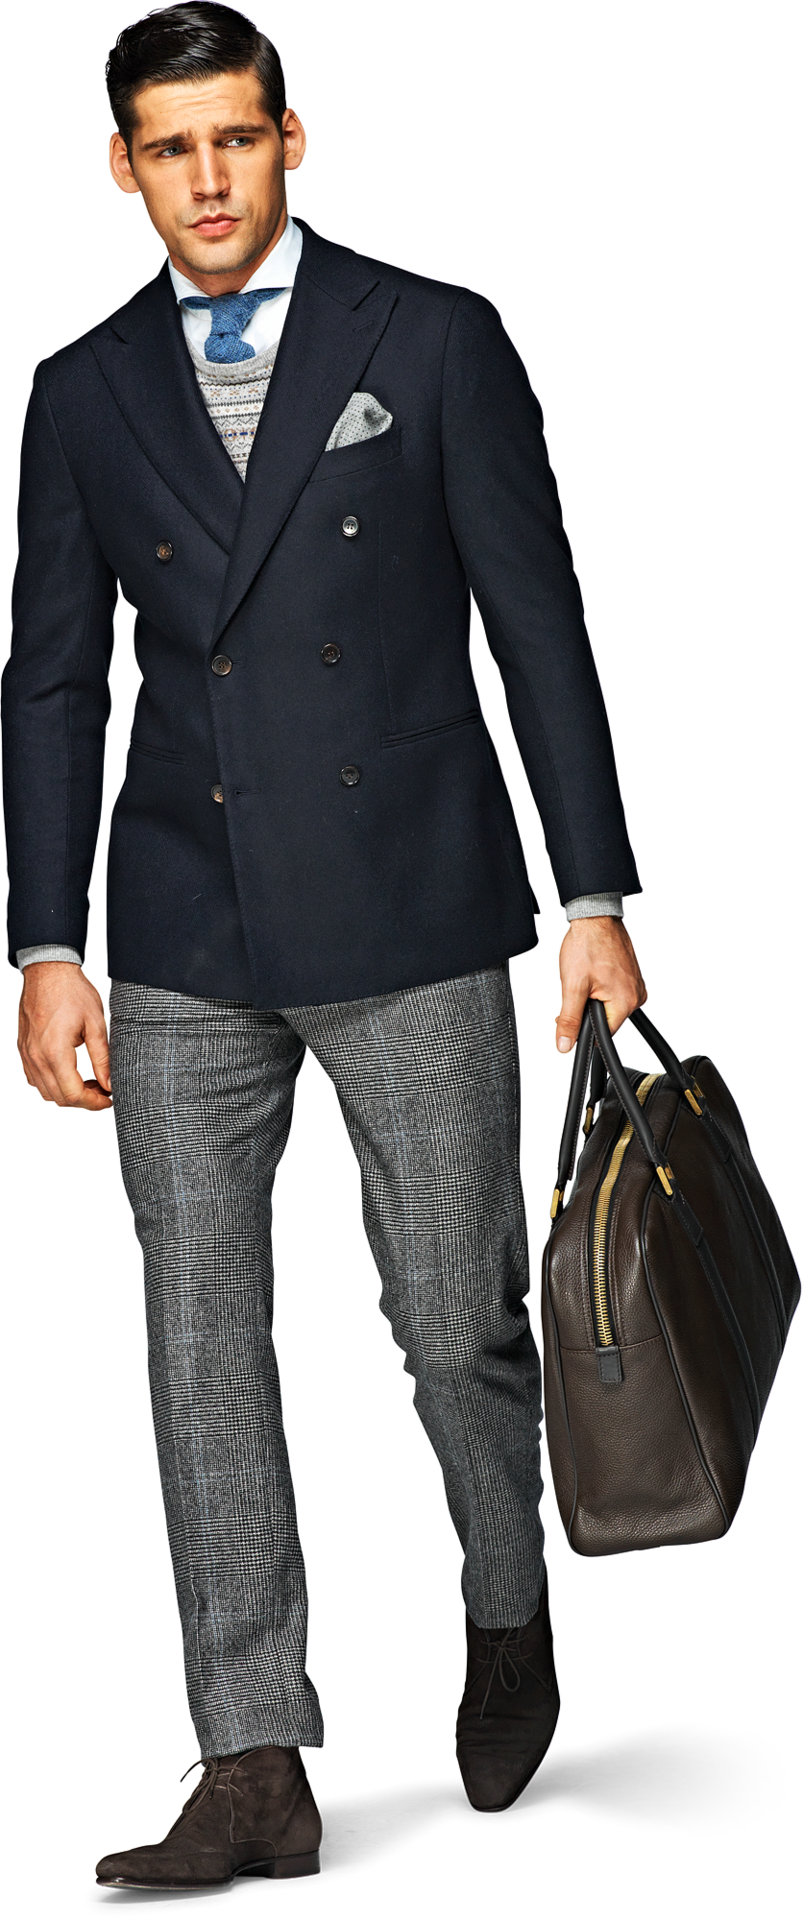 Men suit transparent pictures. Mens fashion png picture royalty free stock